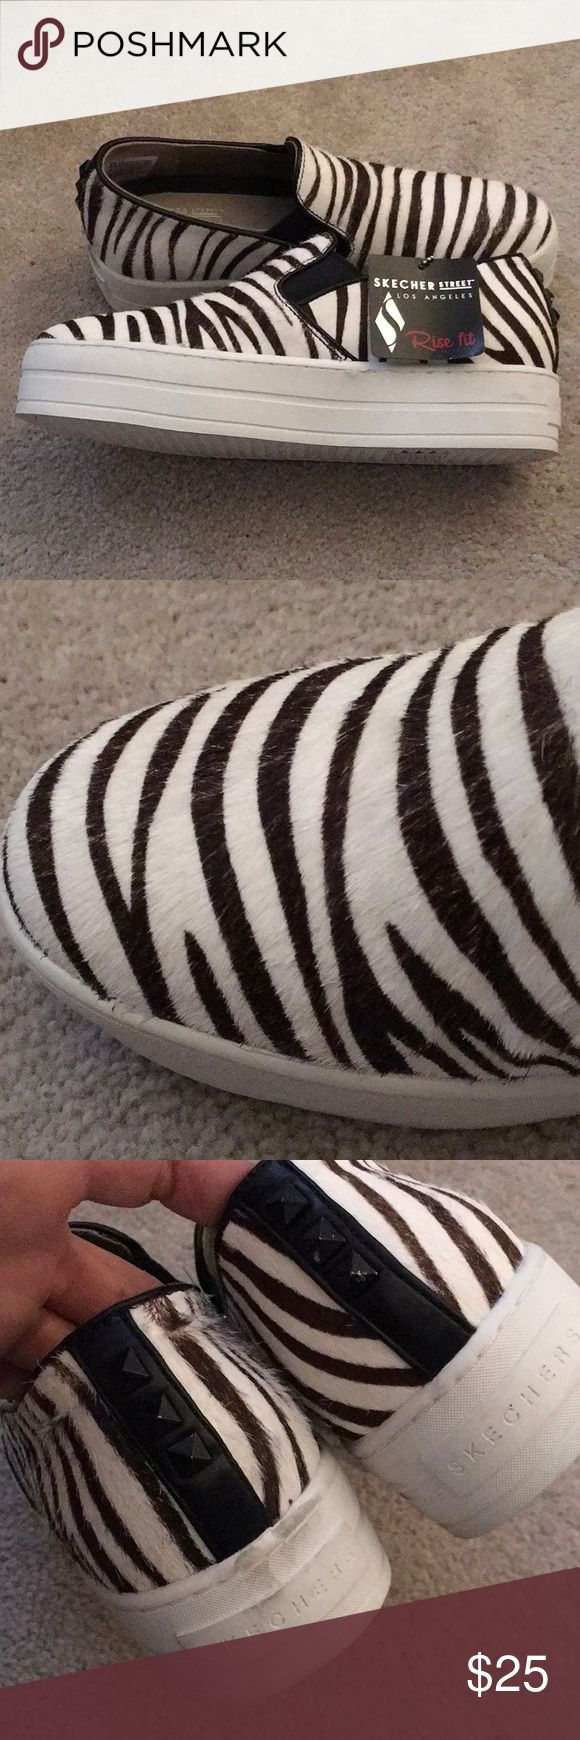 Skechers Street Rise Fit. Size 6W Pony Hair Skechers slip on tennis shoes. Absolutely adorable.... wish they were my size. Slight marks on heels. Please see pictures. Skechers Shoes Athletic Shoes